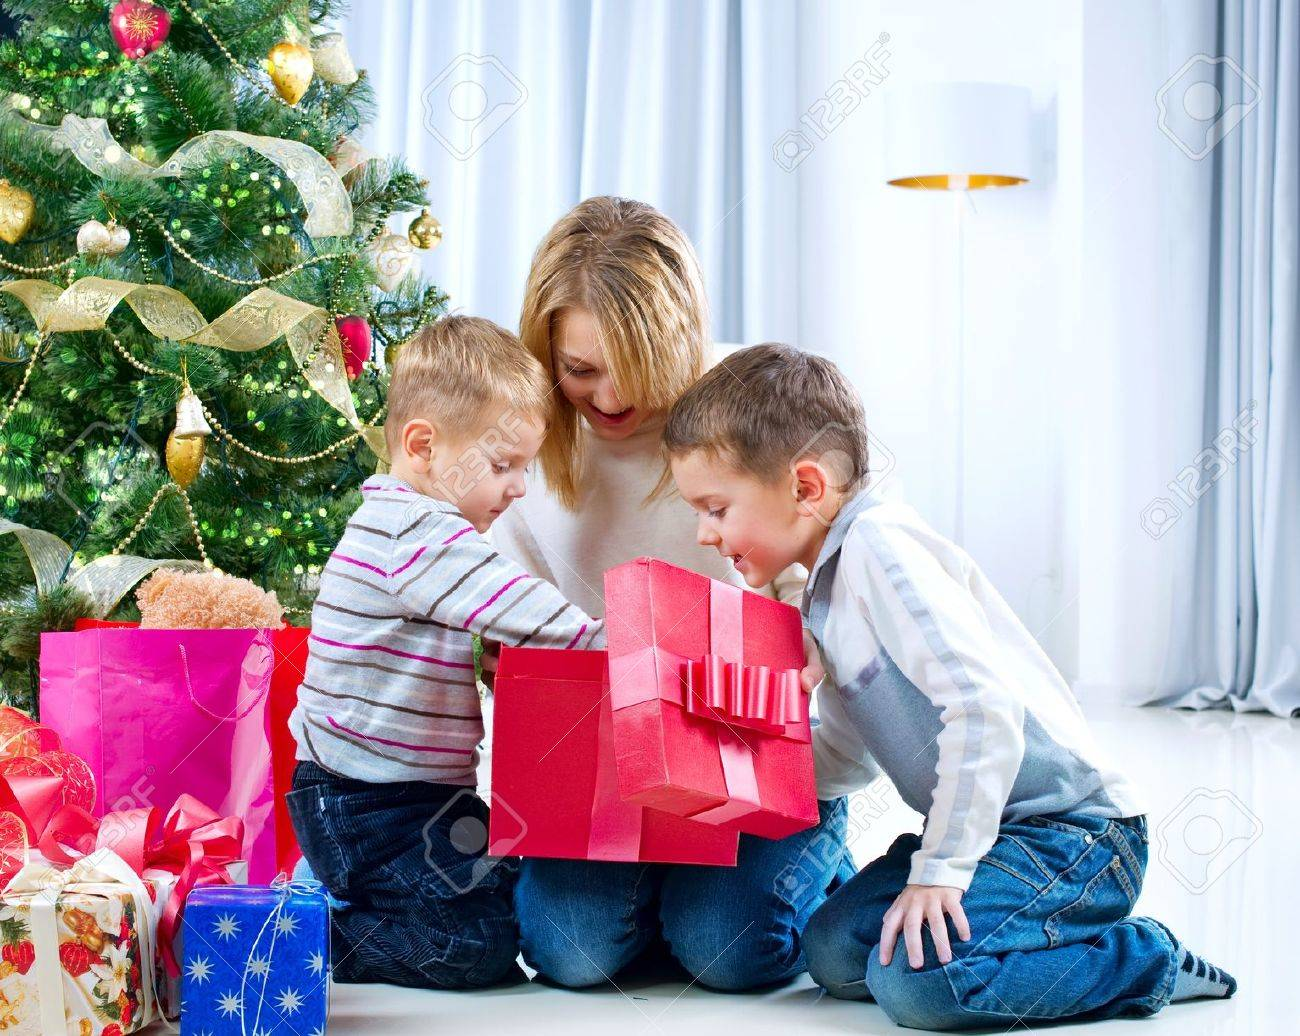 Children With Christmas Gifts. Christmas Tree Stock Photo, Picture ...